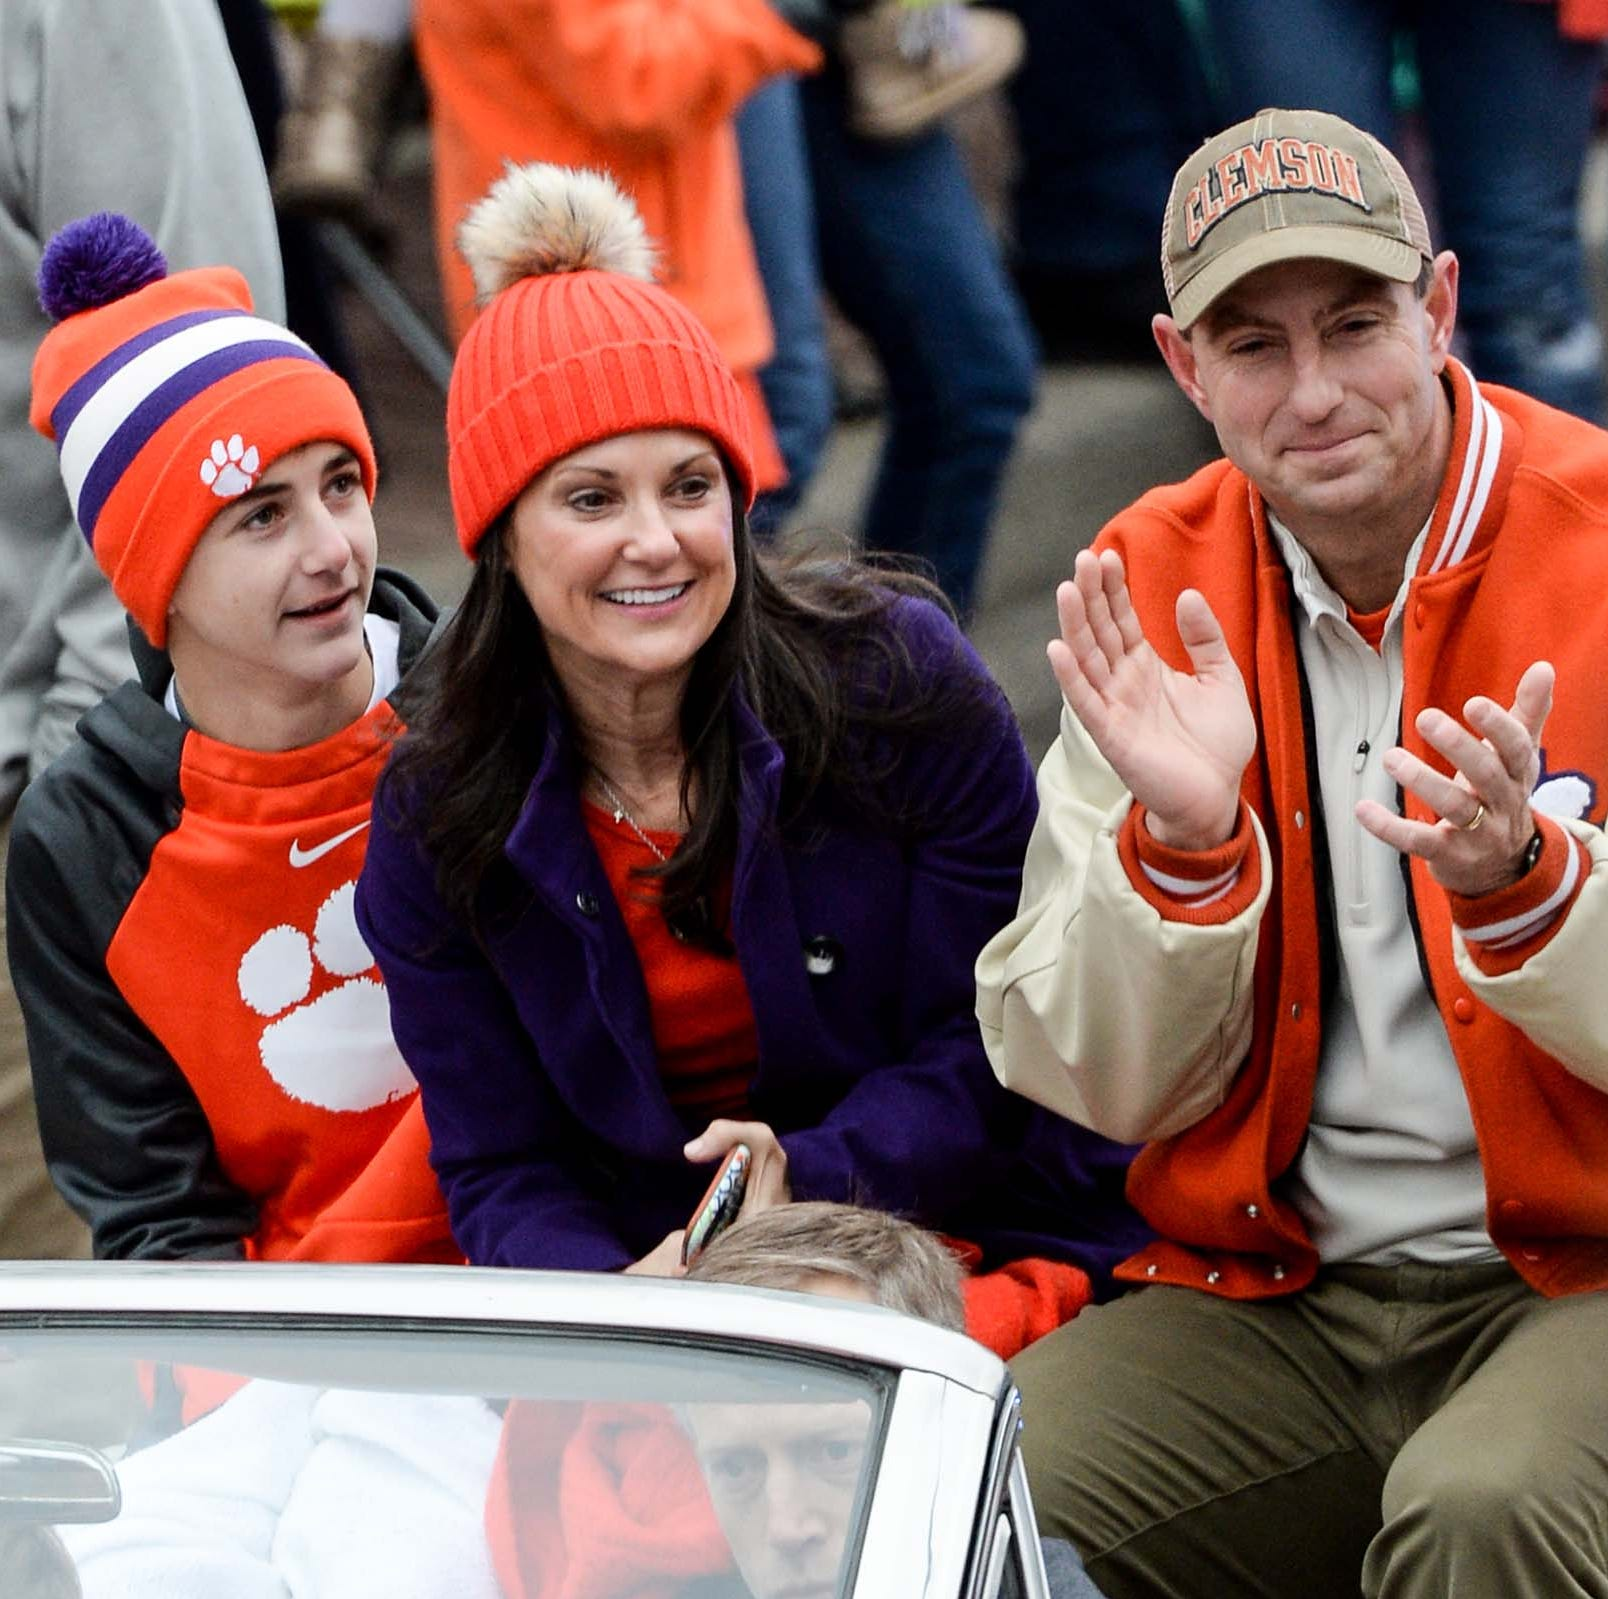 If Dabo Swinney ever leaves Clemson football, he should go to the NFL, not Alabama